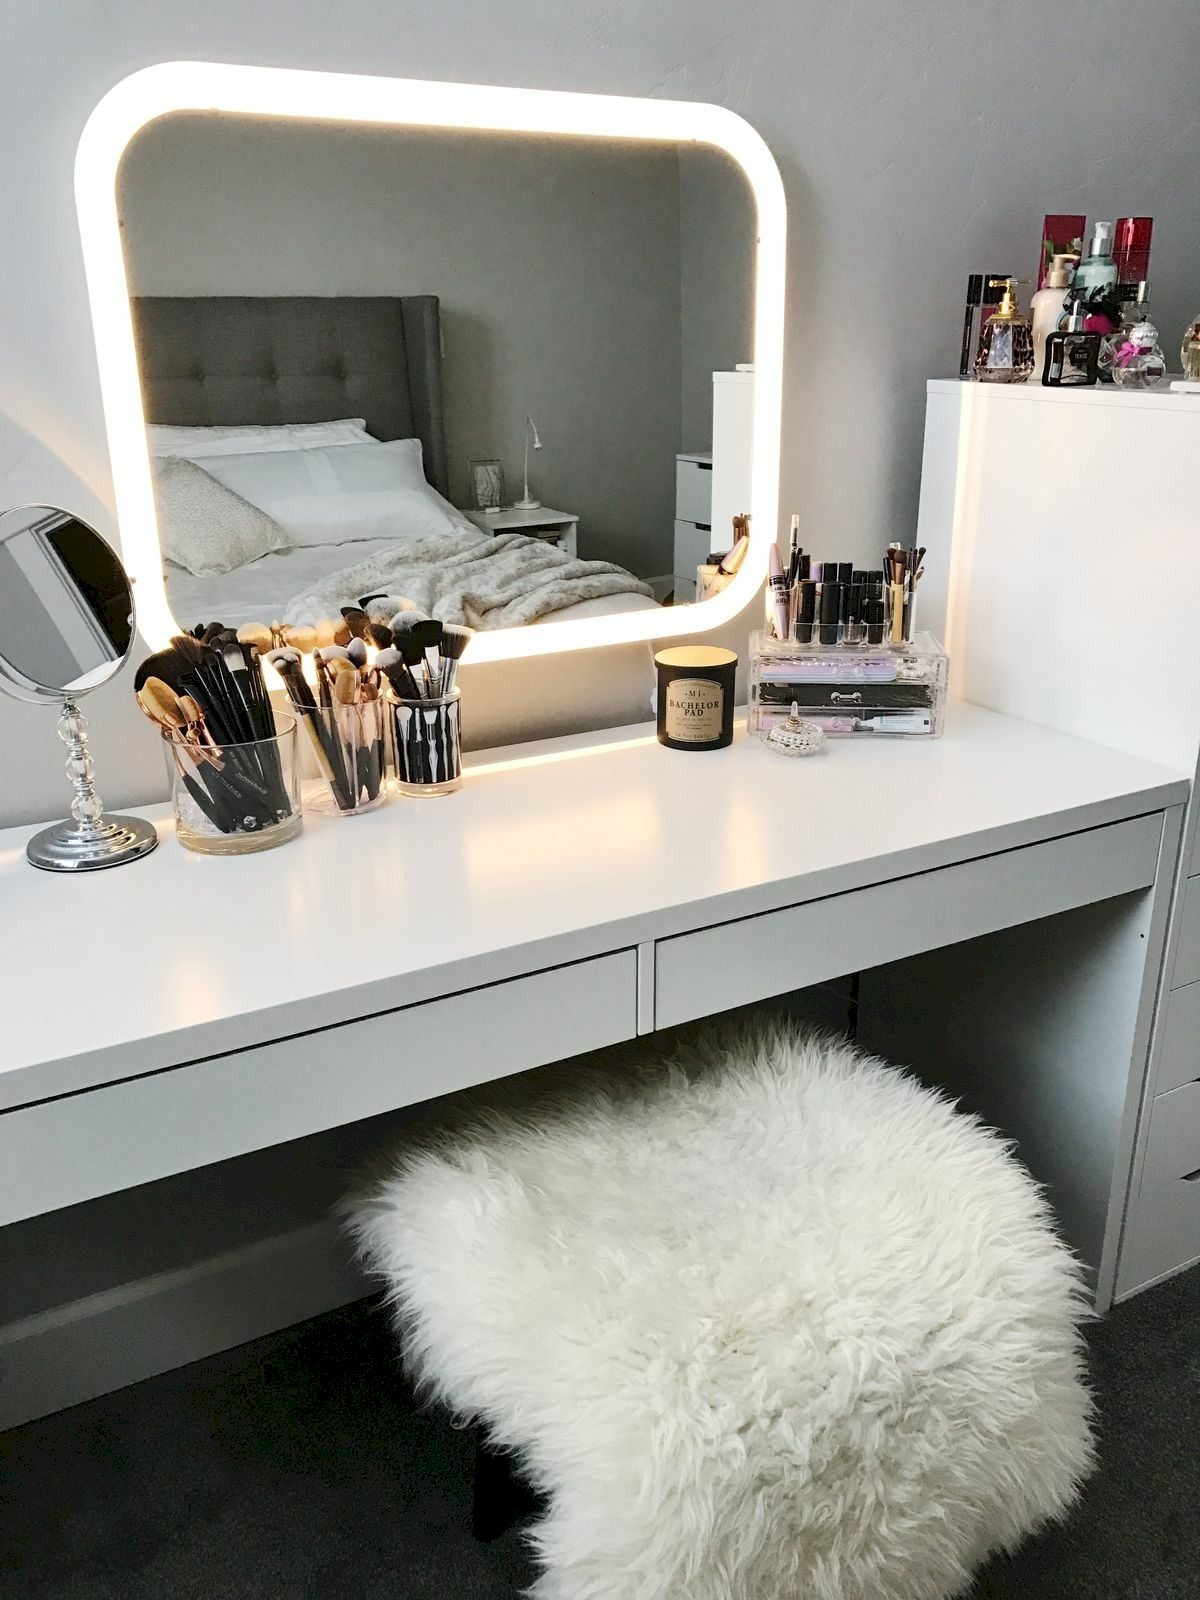 40 Beautiful Make Up Room Ideas in Your Bedroom (22)